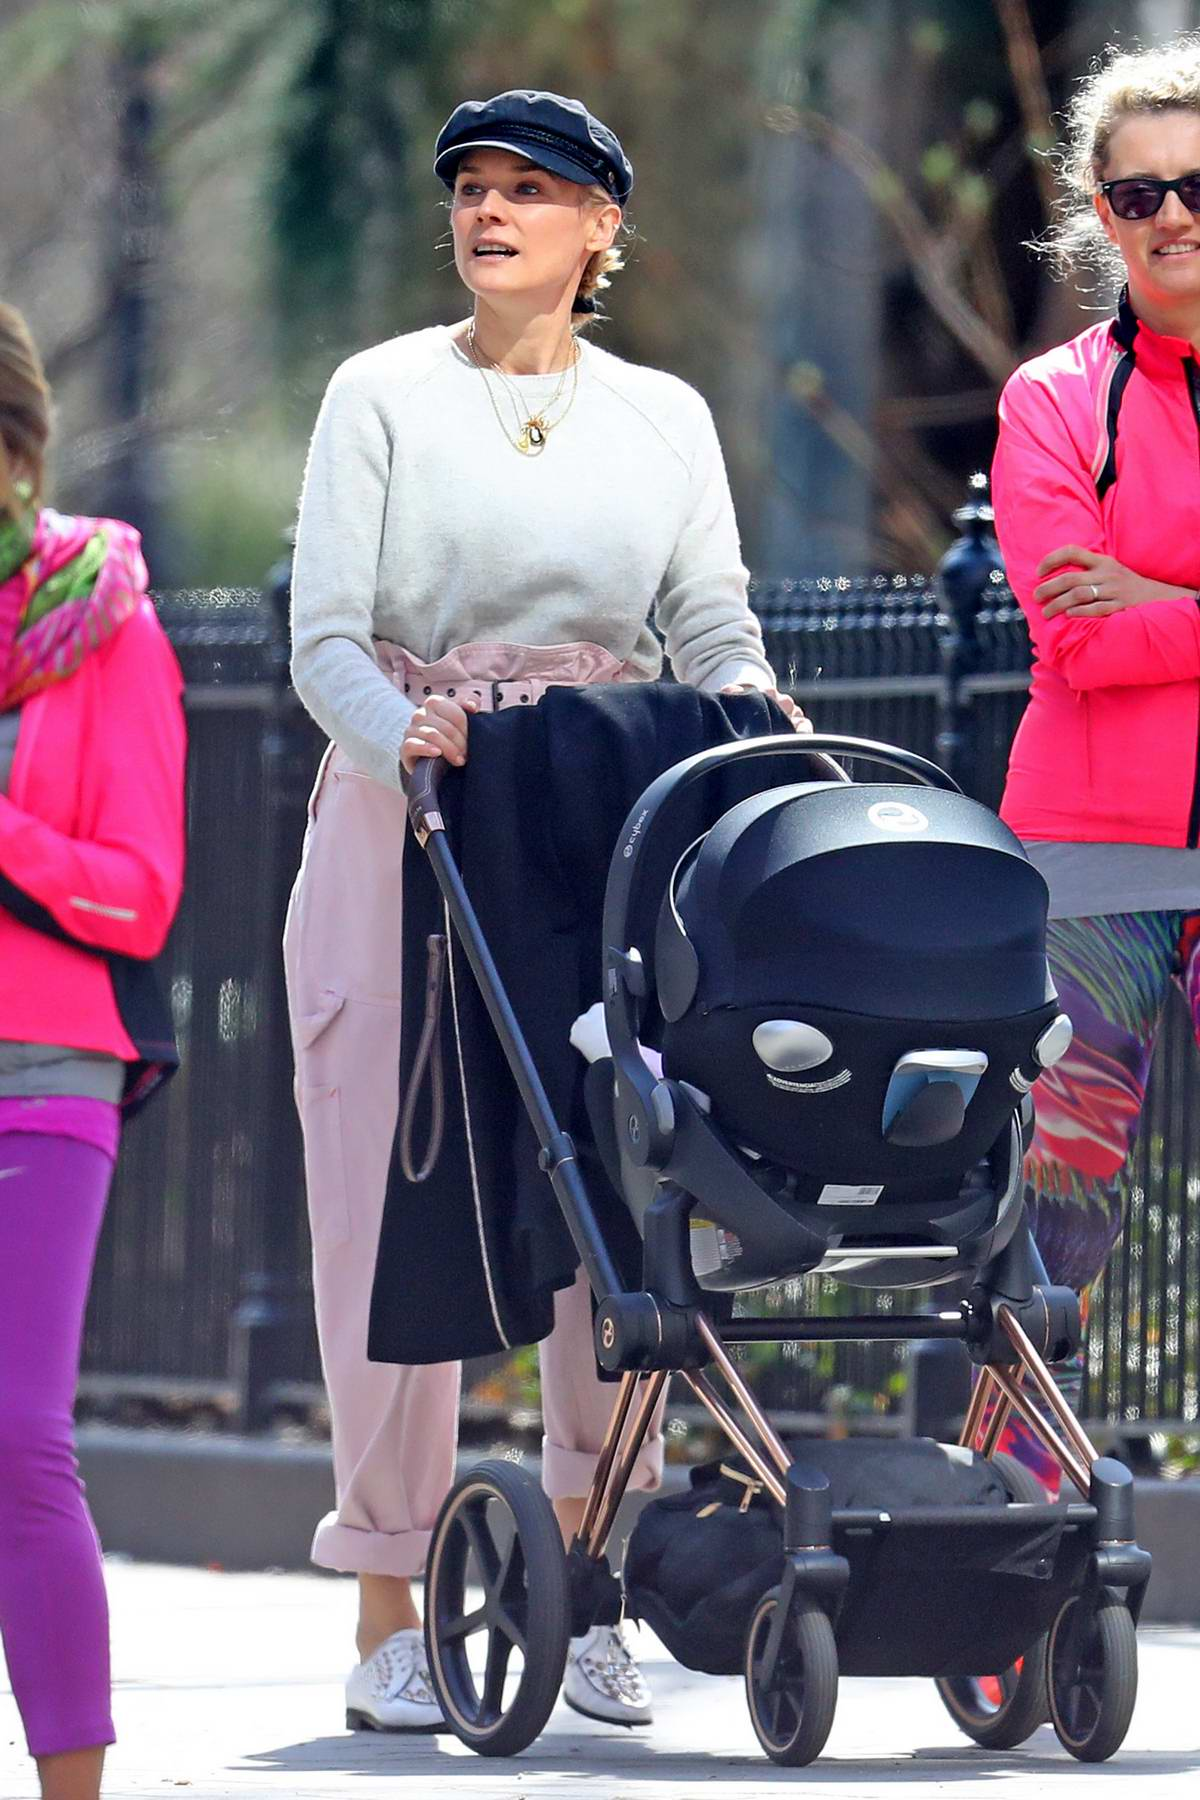 Diane Kruger enjoys a beautiful day with her son in Washington Square Park in New York City